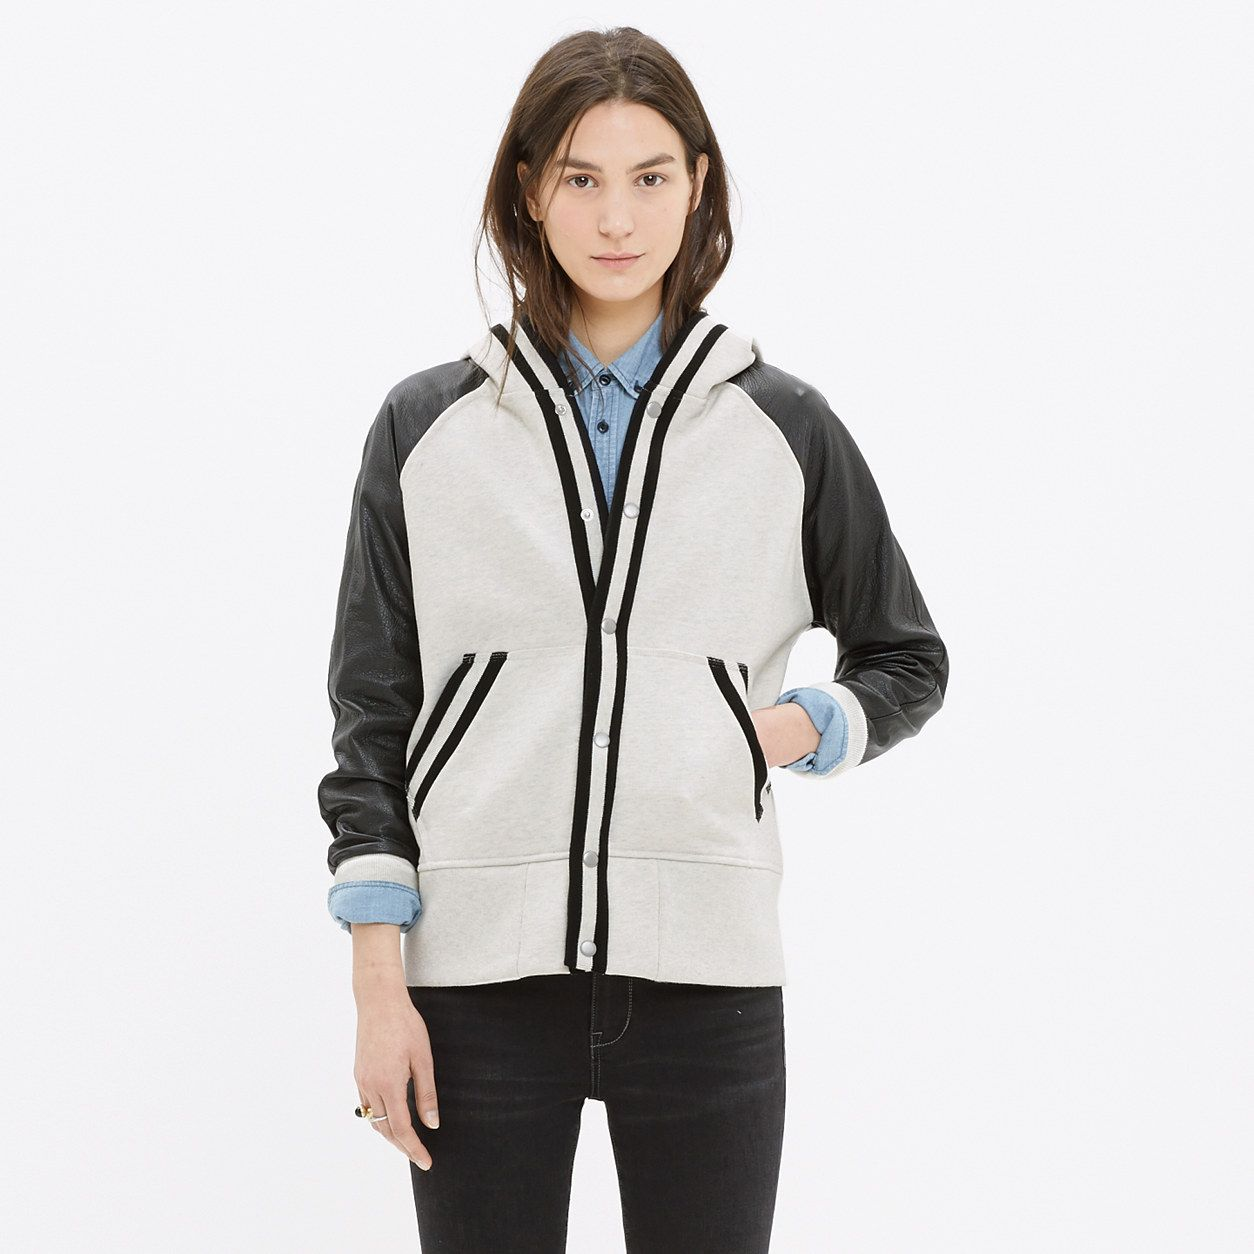 LeatherSleeve Tournament Jacket jackets Madewell